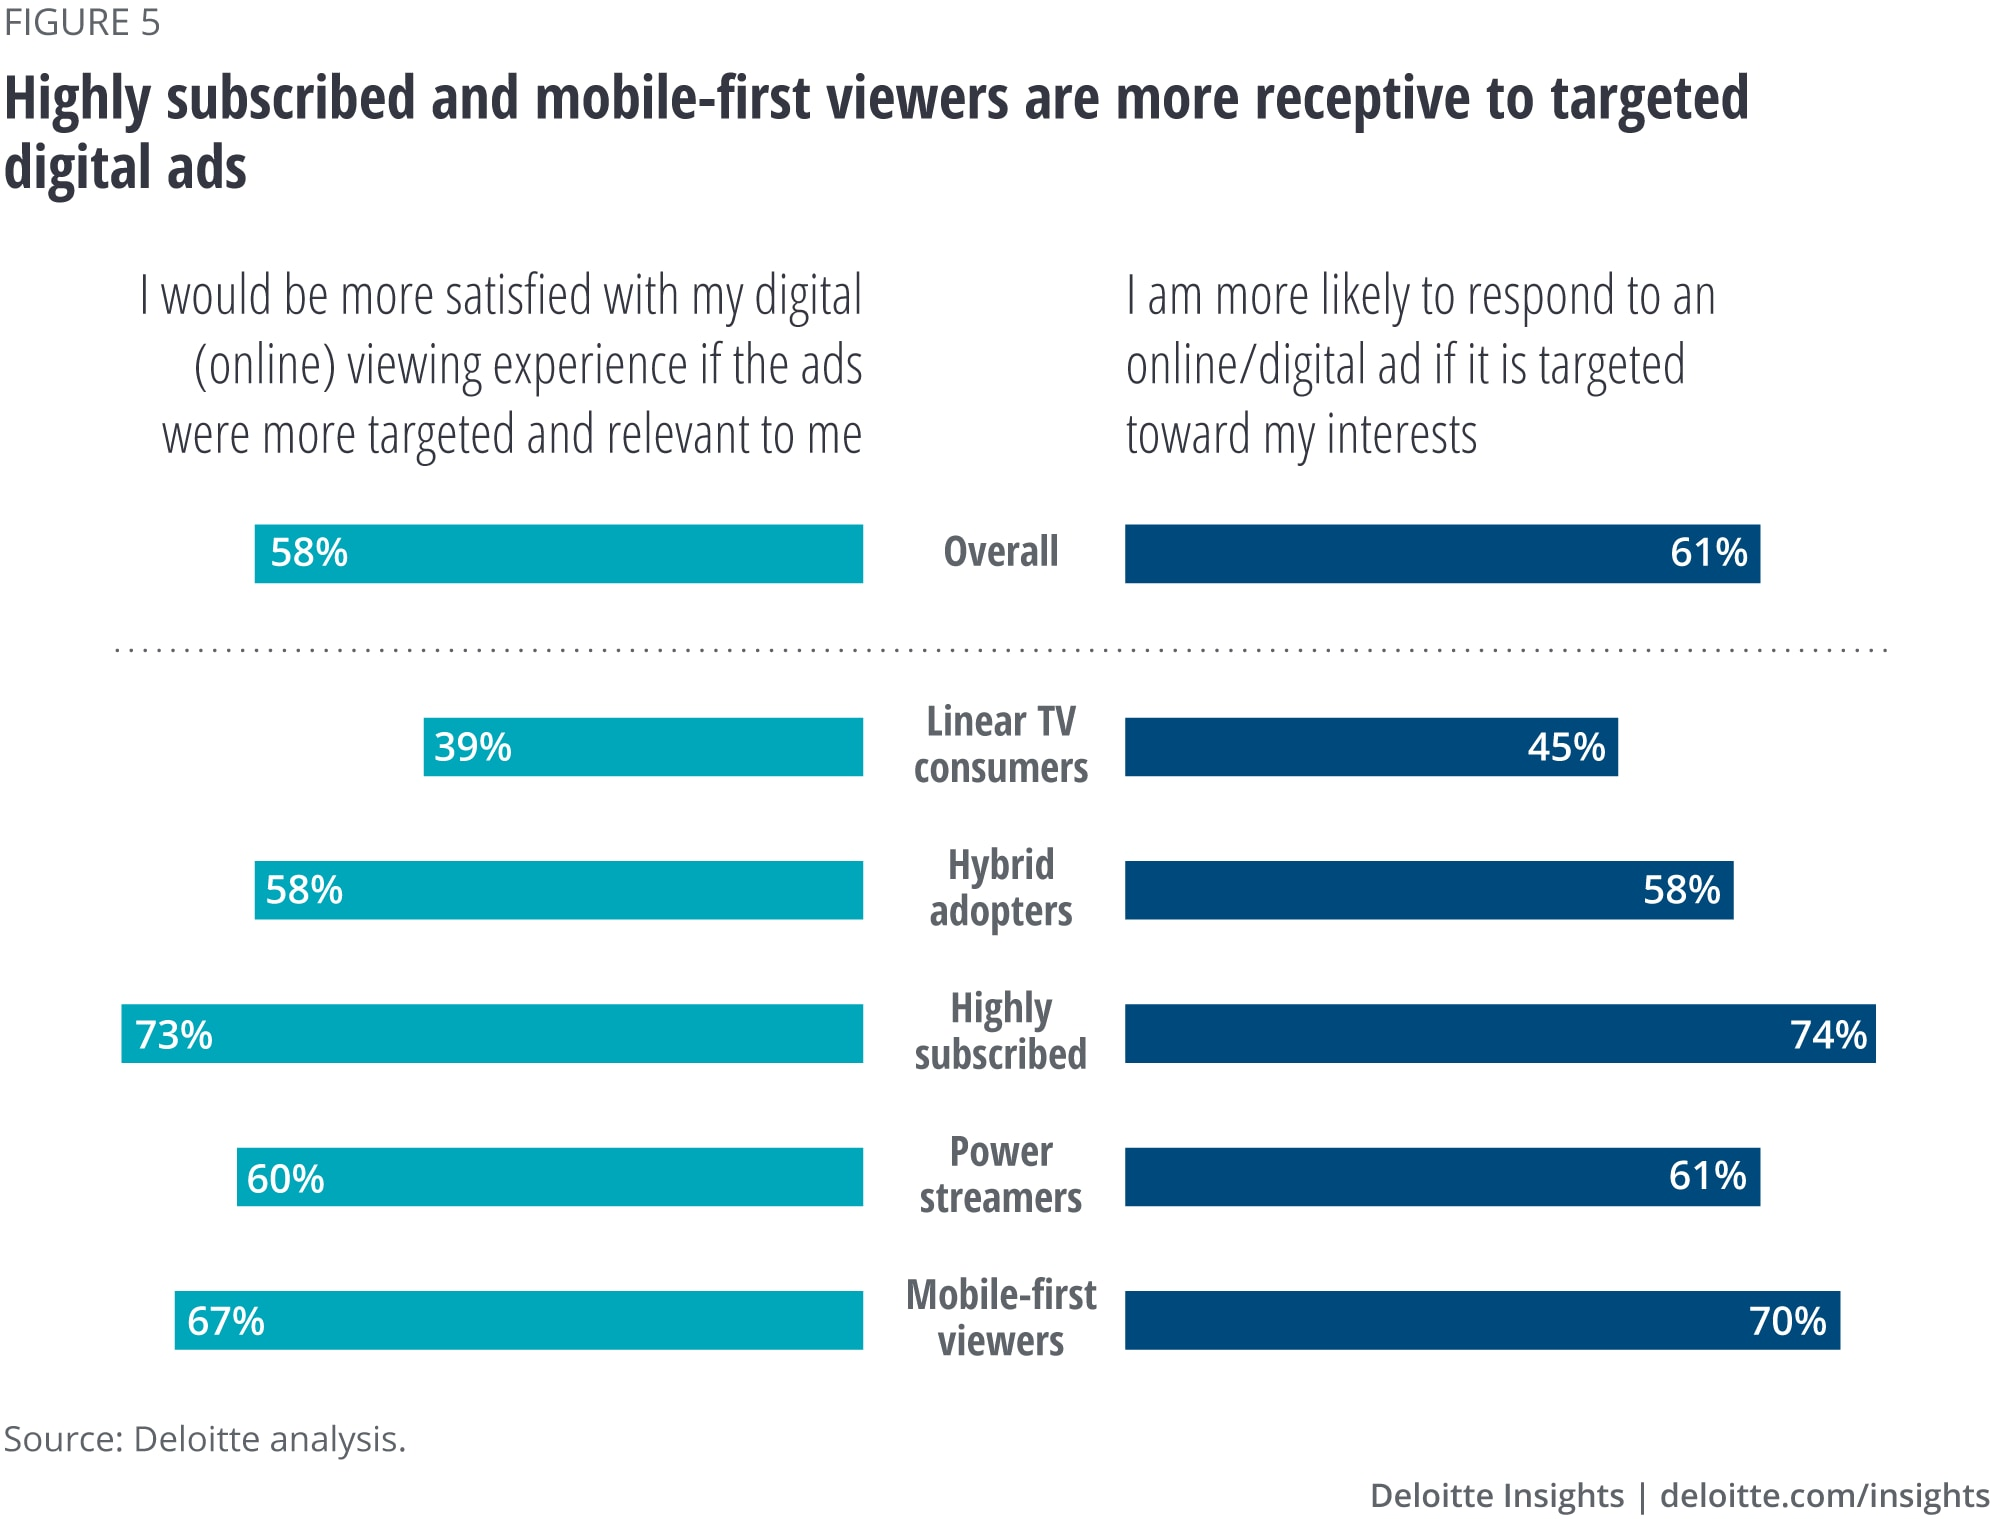 Highly subscribed and mobile-first viewers are more receptive to targeted digital ads